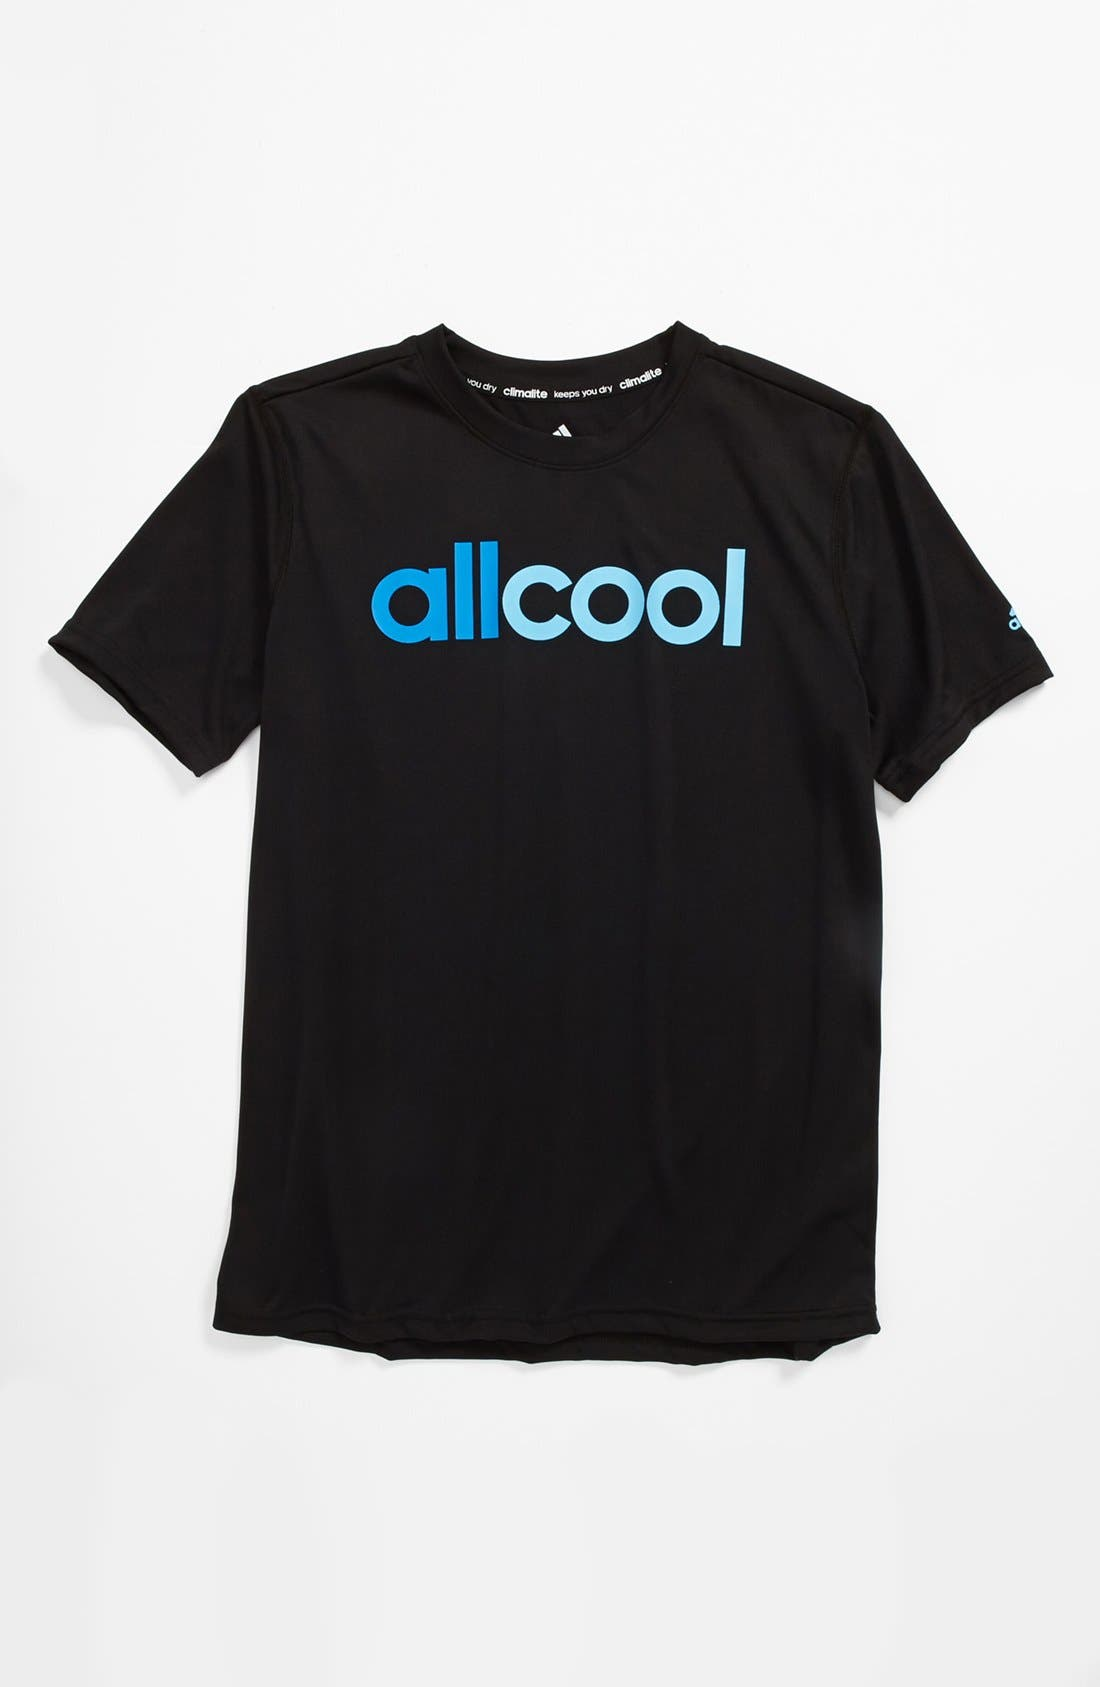 Alternate Image 1 Selected - adidas 'All Cool' T-Shirt (Big Boys)